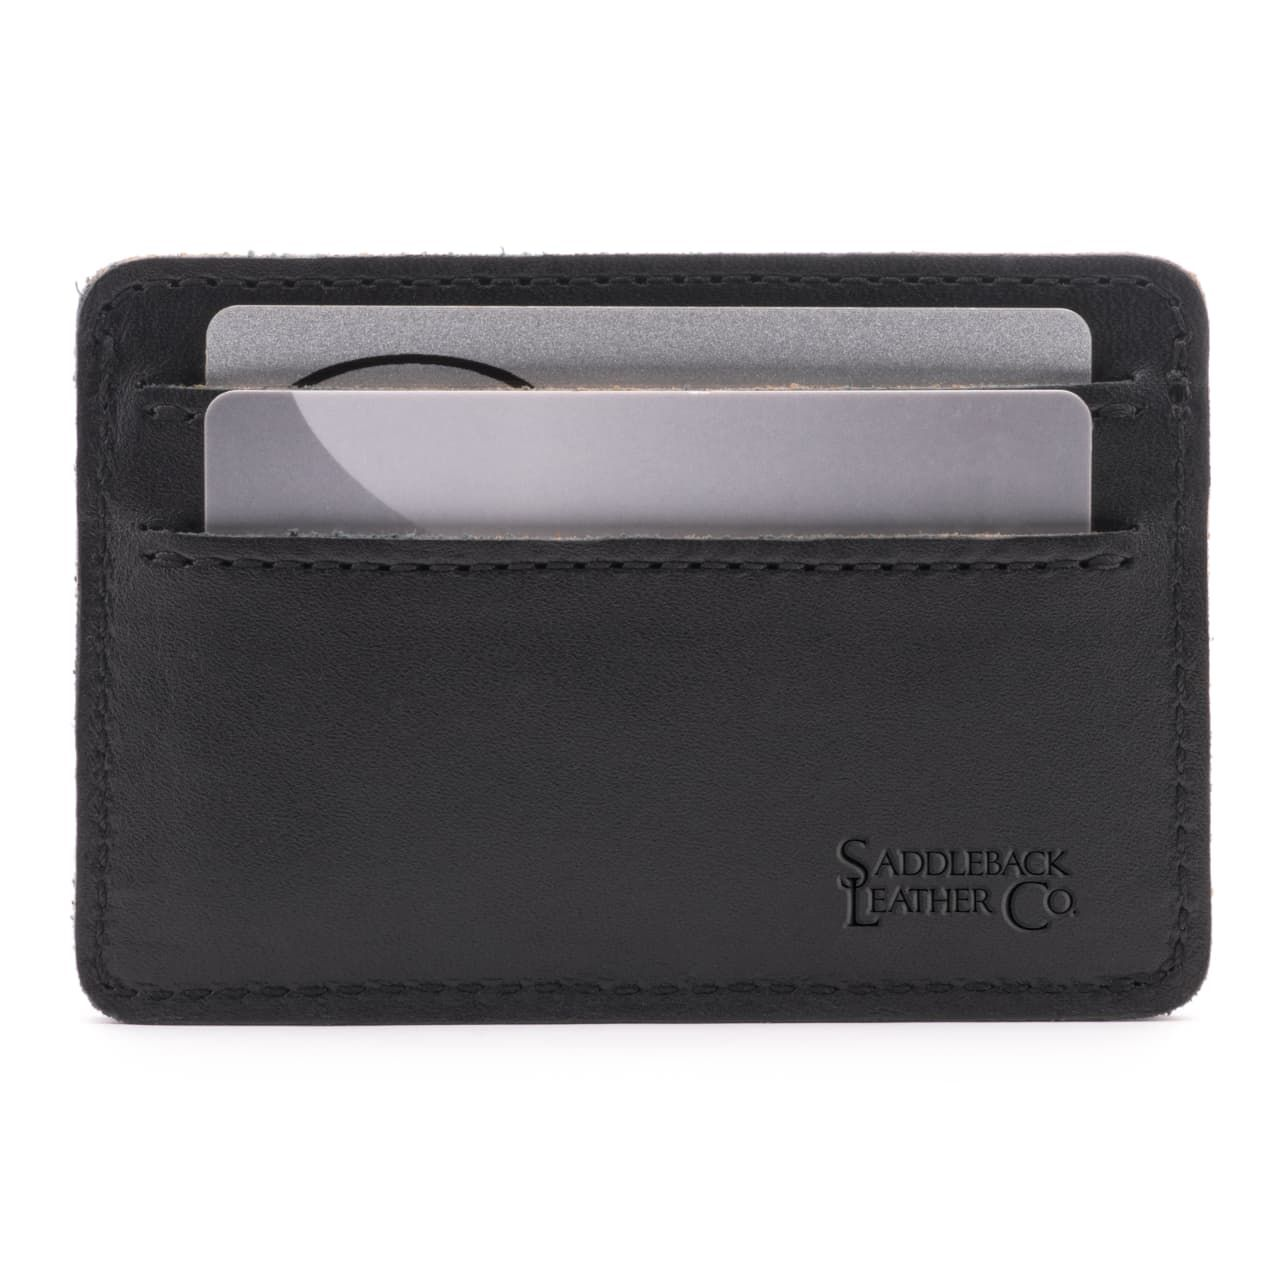 leather front pocket wallet in black leather